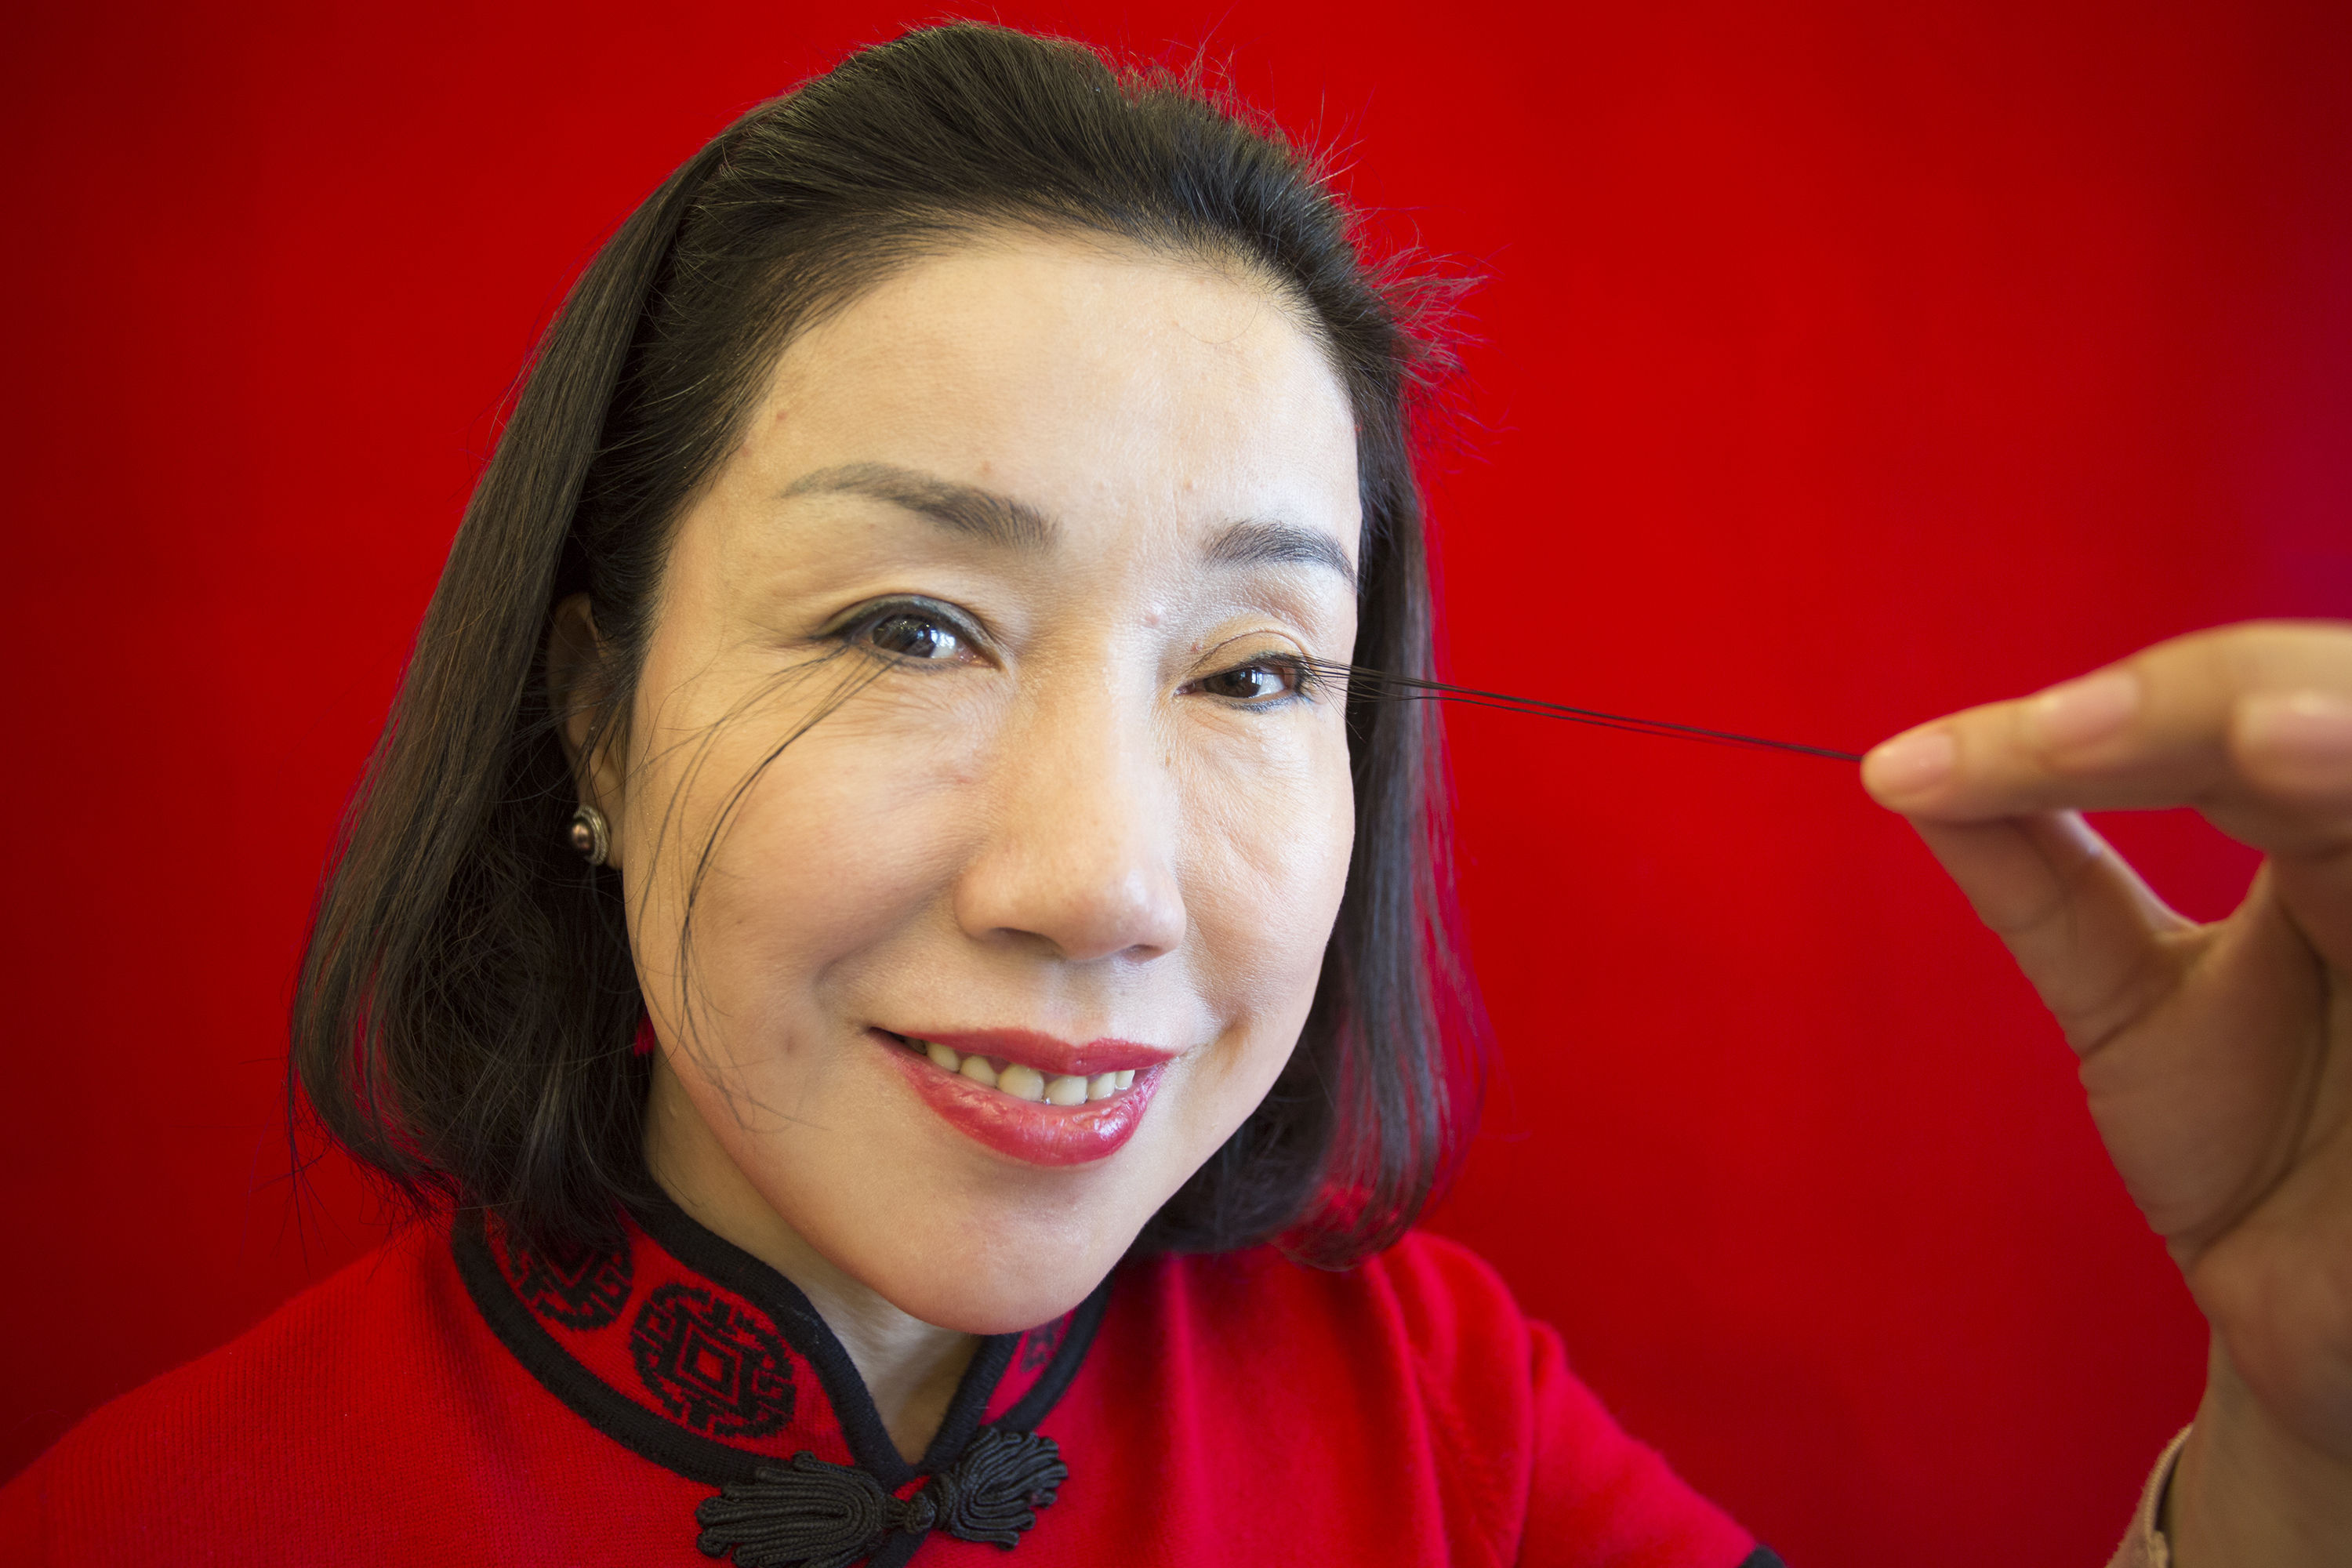 This Woman Is the Guinness World Record Holder for the Longest Nails